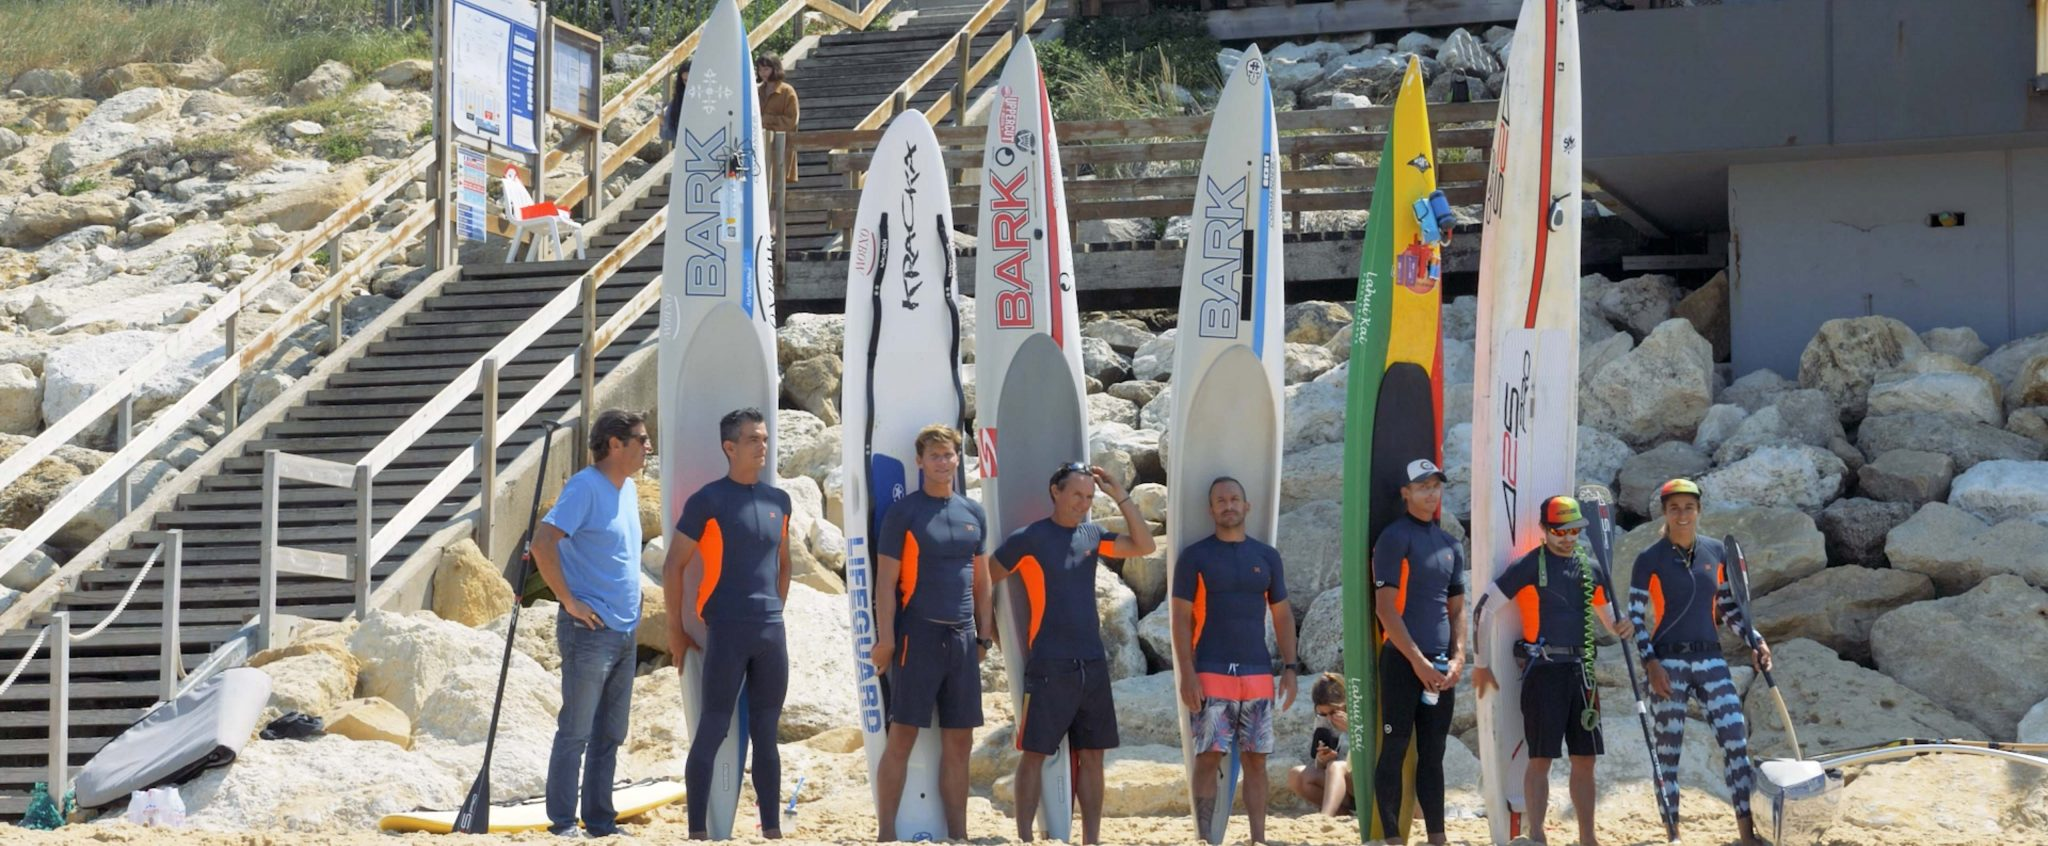 dune-paddle-crossing-mringalss-films-pays-basque-anglet-bayonne-biarritz-pierre-frechou